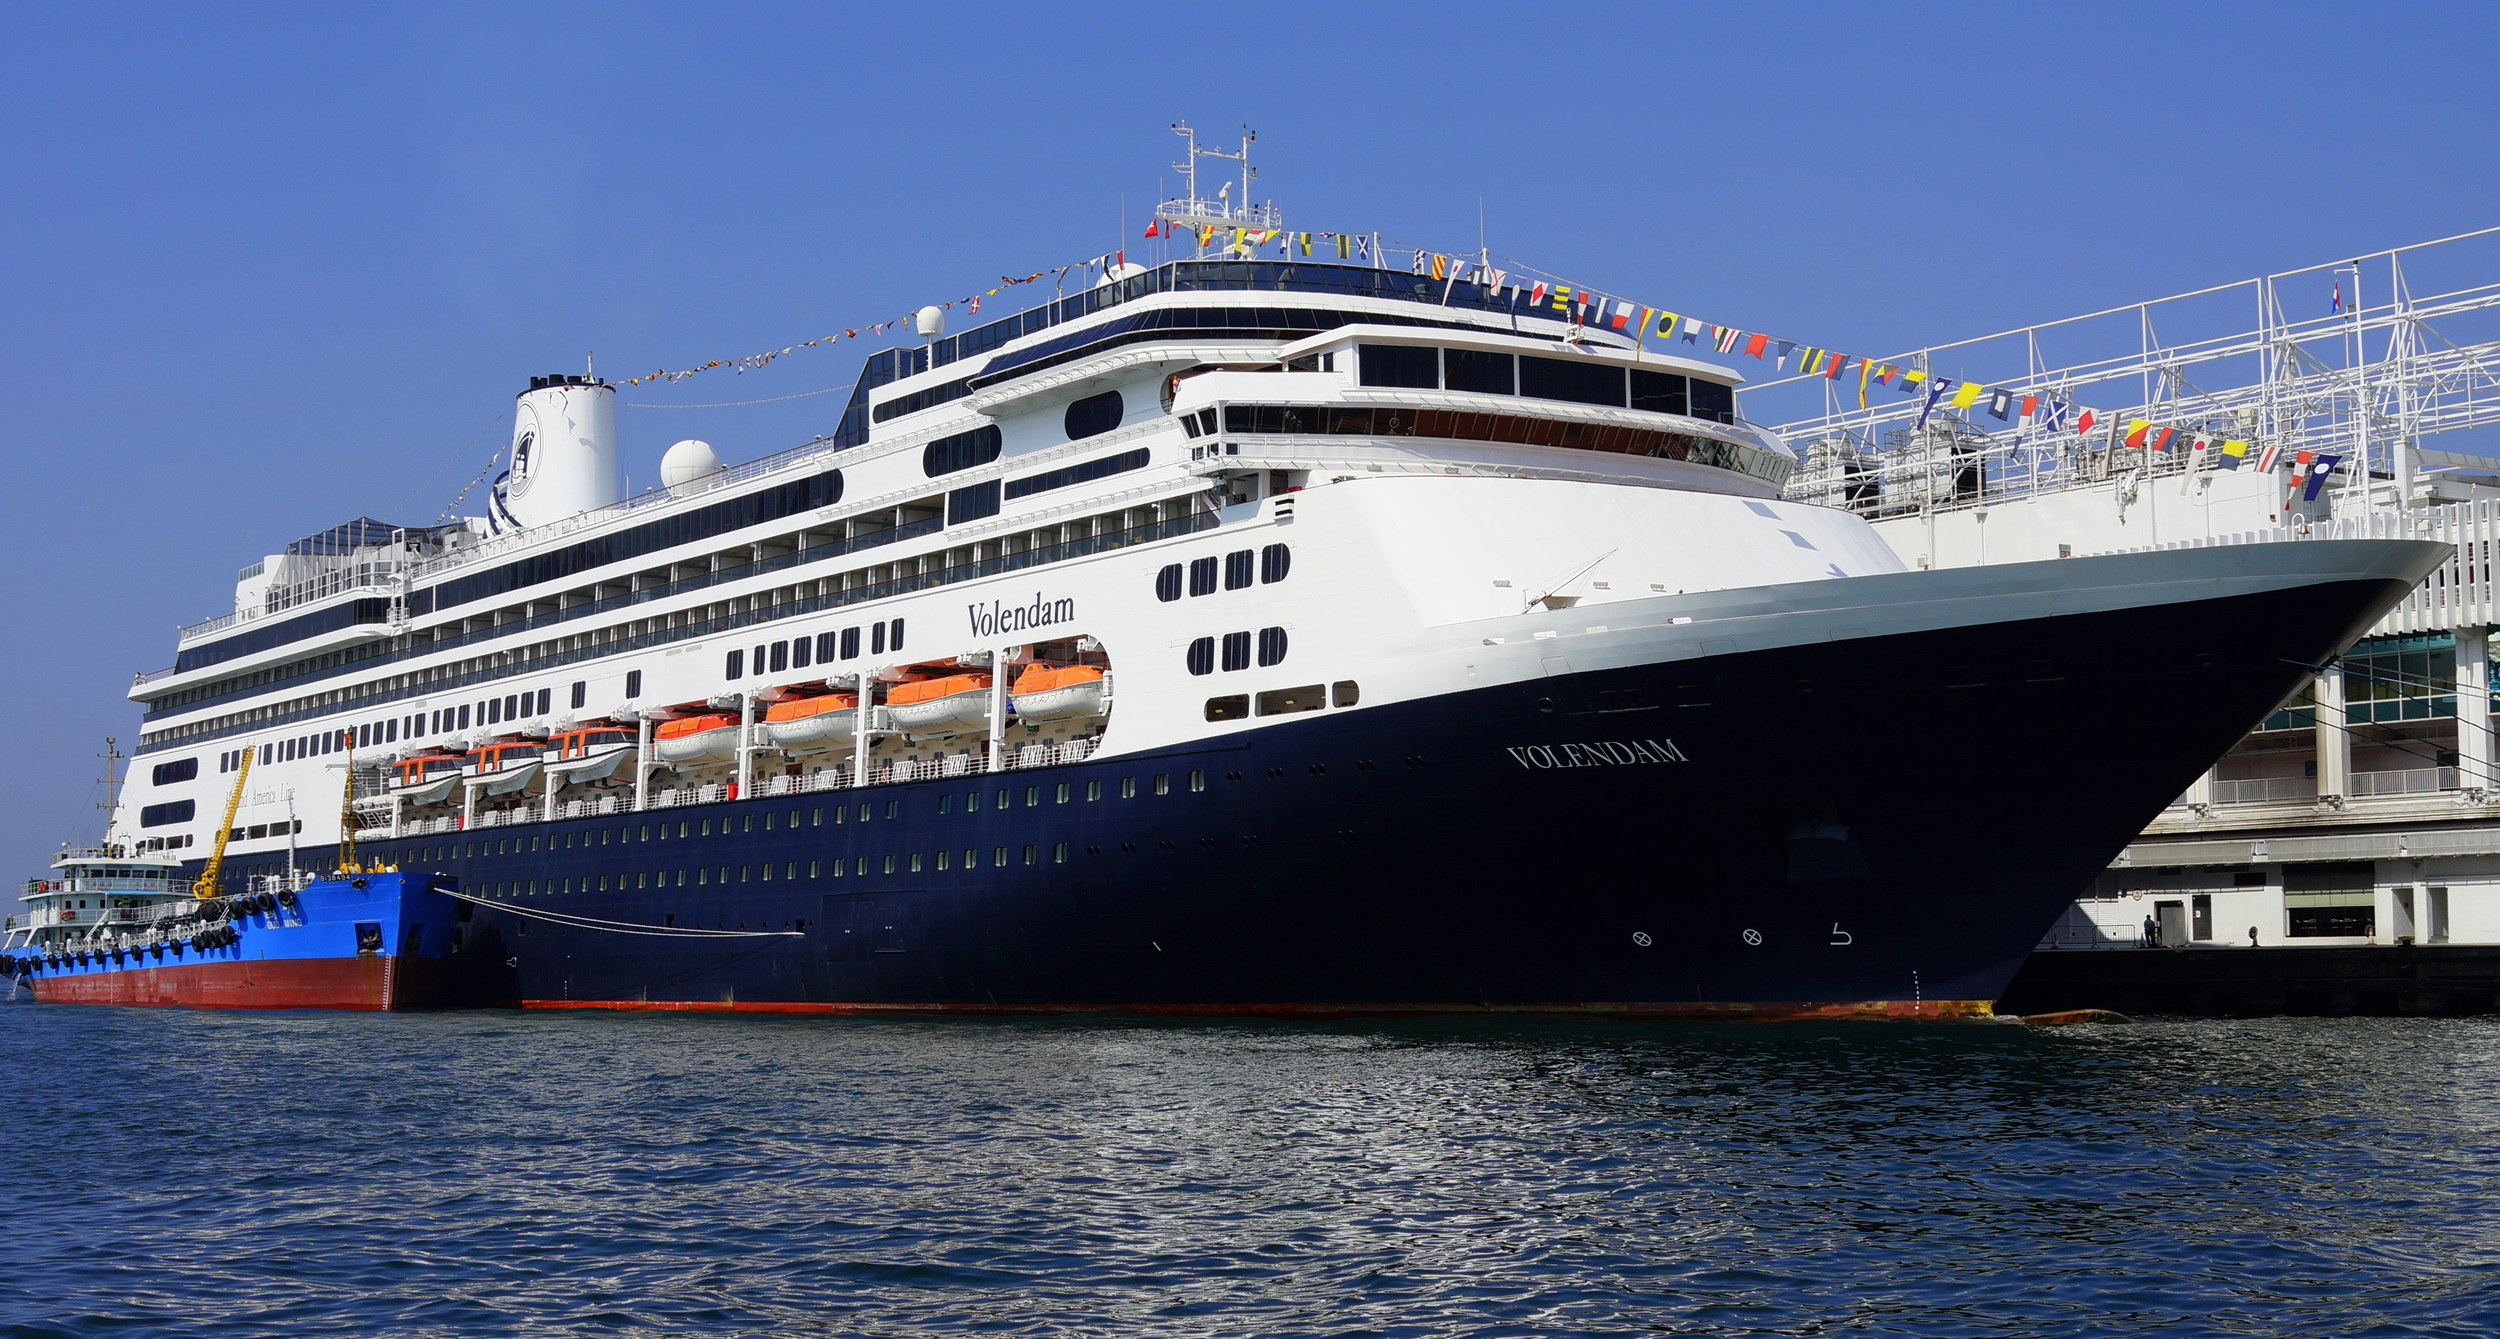 The Volendam Cruise Ship docked at the Ocean Terminal - we are getting a lot more cruise ships this year compared to 2013.